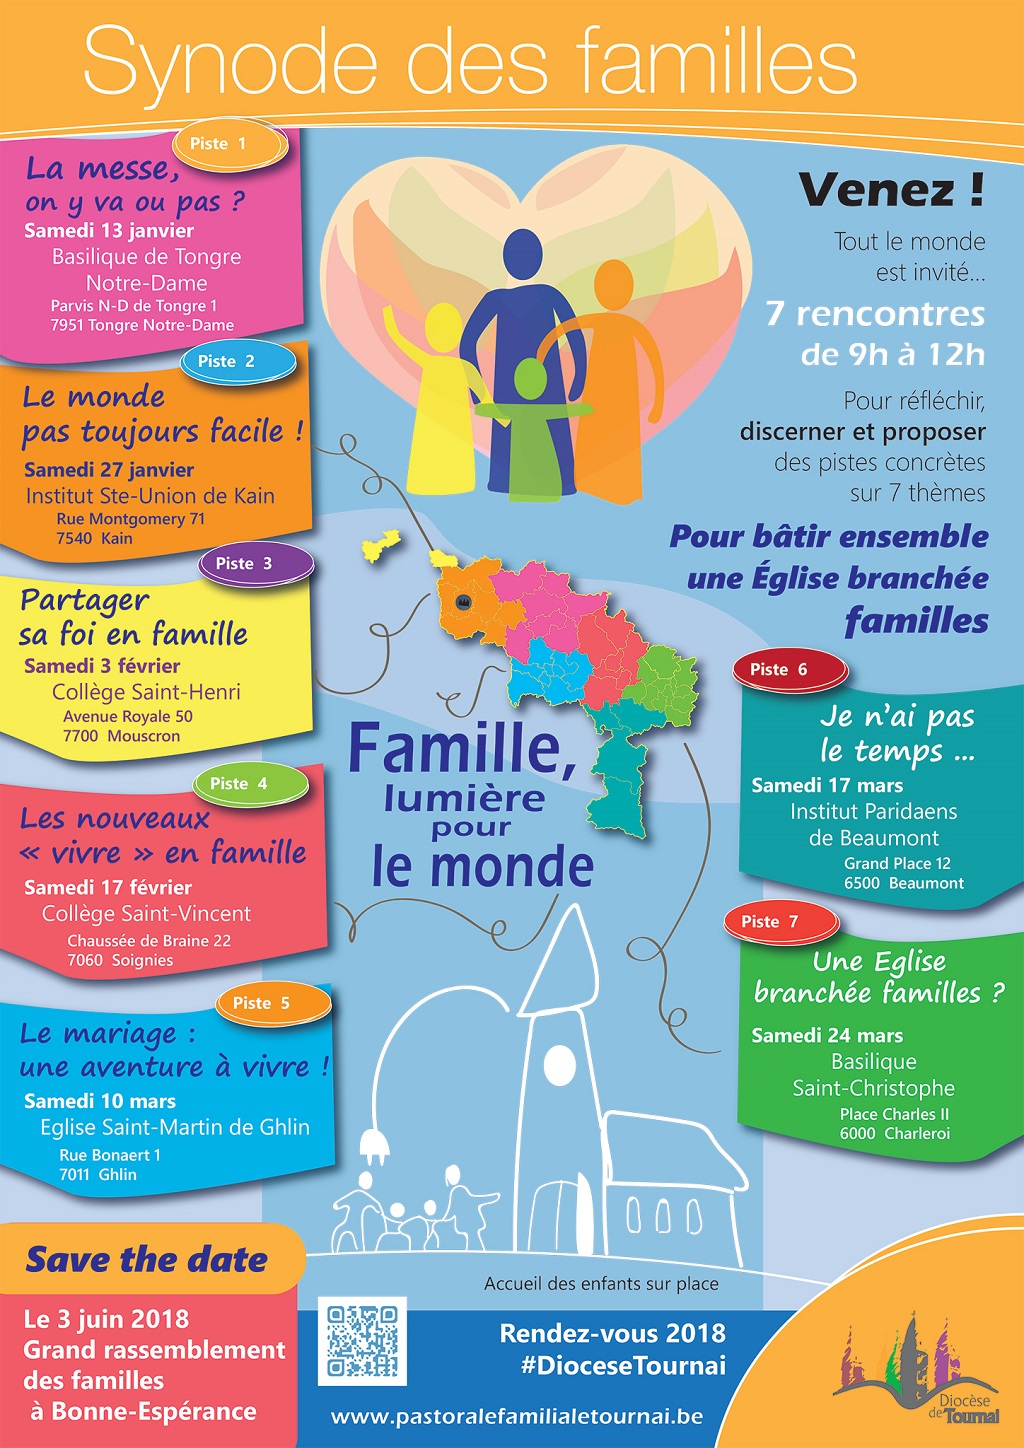 projet affiche 7rencontres syno famille 2018